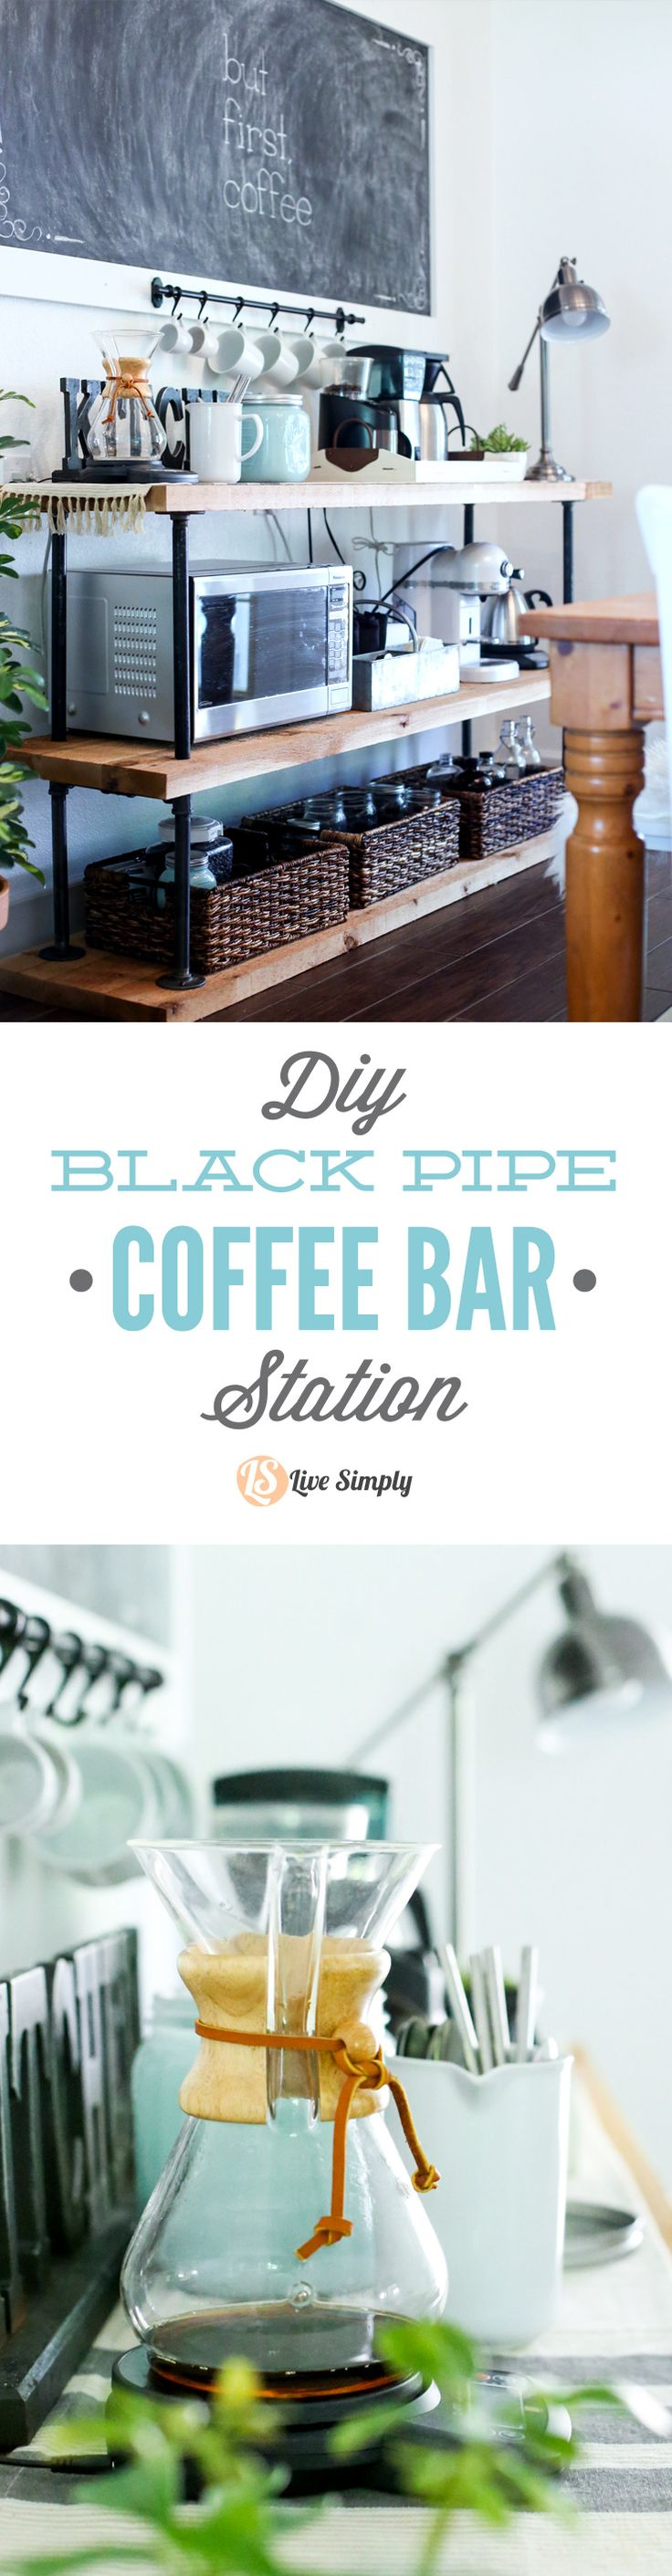 Build your own coffee bar! This project is made with industrial-style black pipes and wood--that's it! Get that classic coffee bar look in your own home.